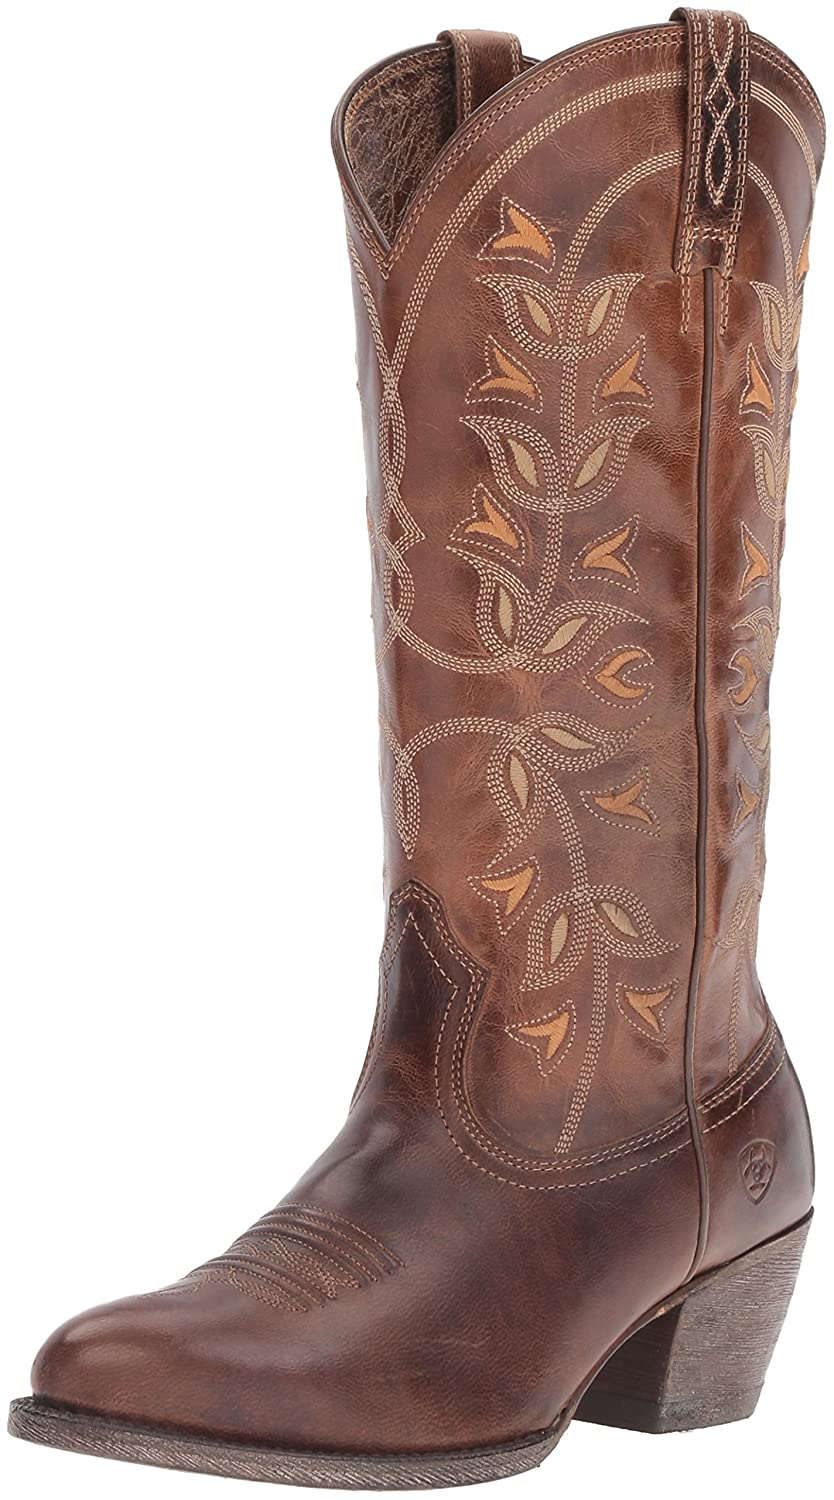 Ariat Women's Desert Holly Western Cowboy Boot B00IM7DHIK 6.5 B(M) US|Pearl